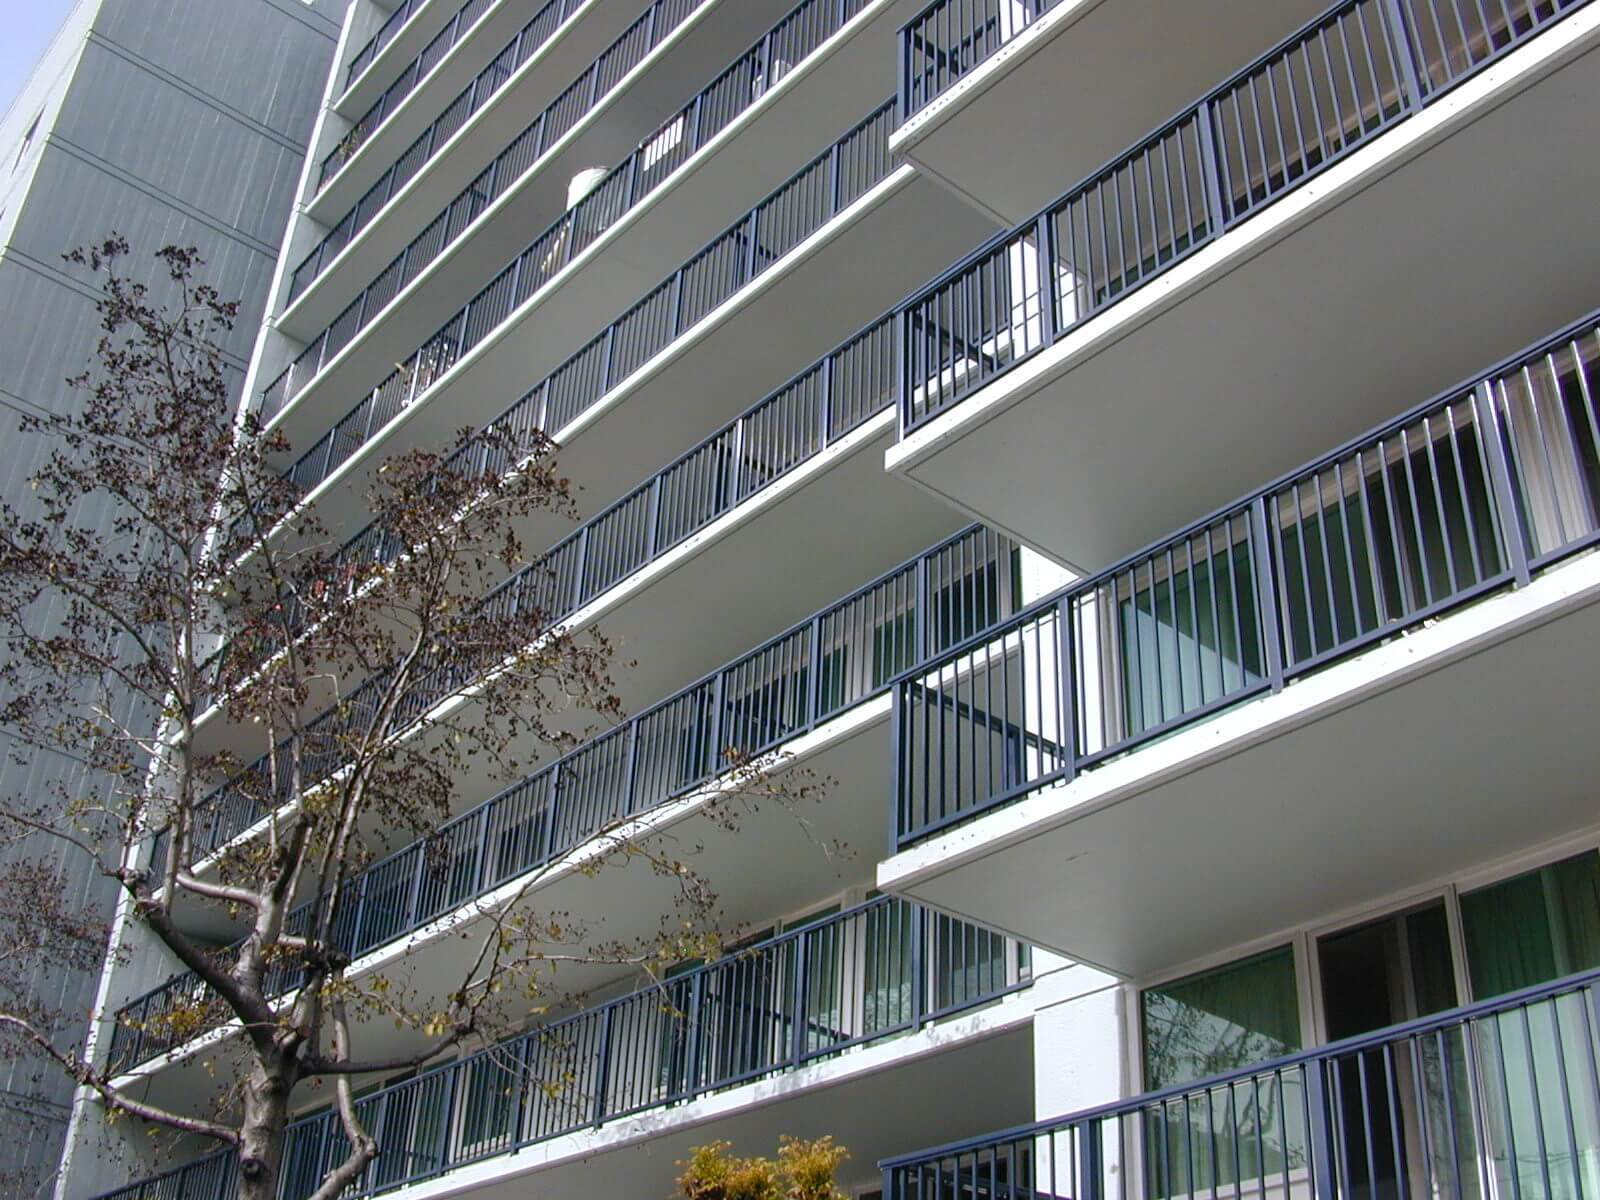 Steel tube railing on Rose of Sharon balconies in Oakland, California